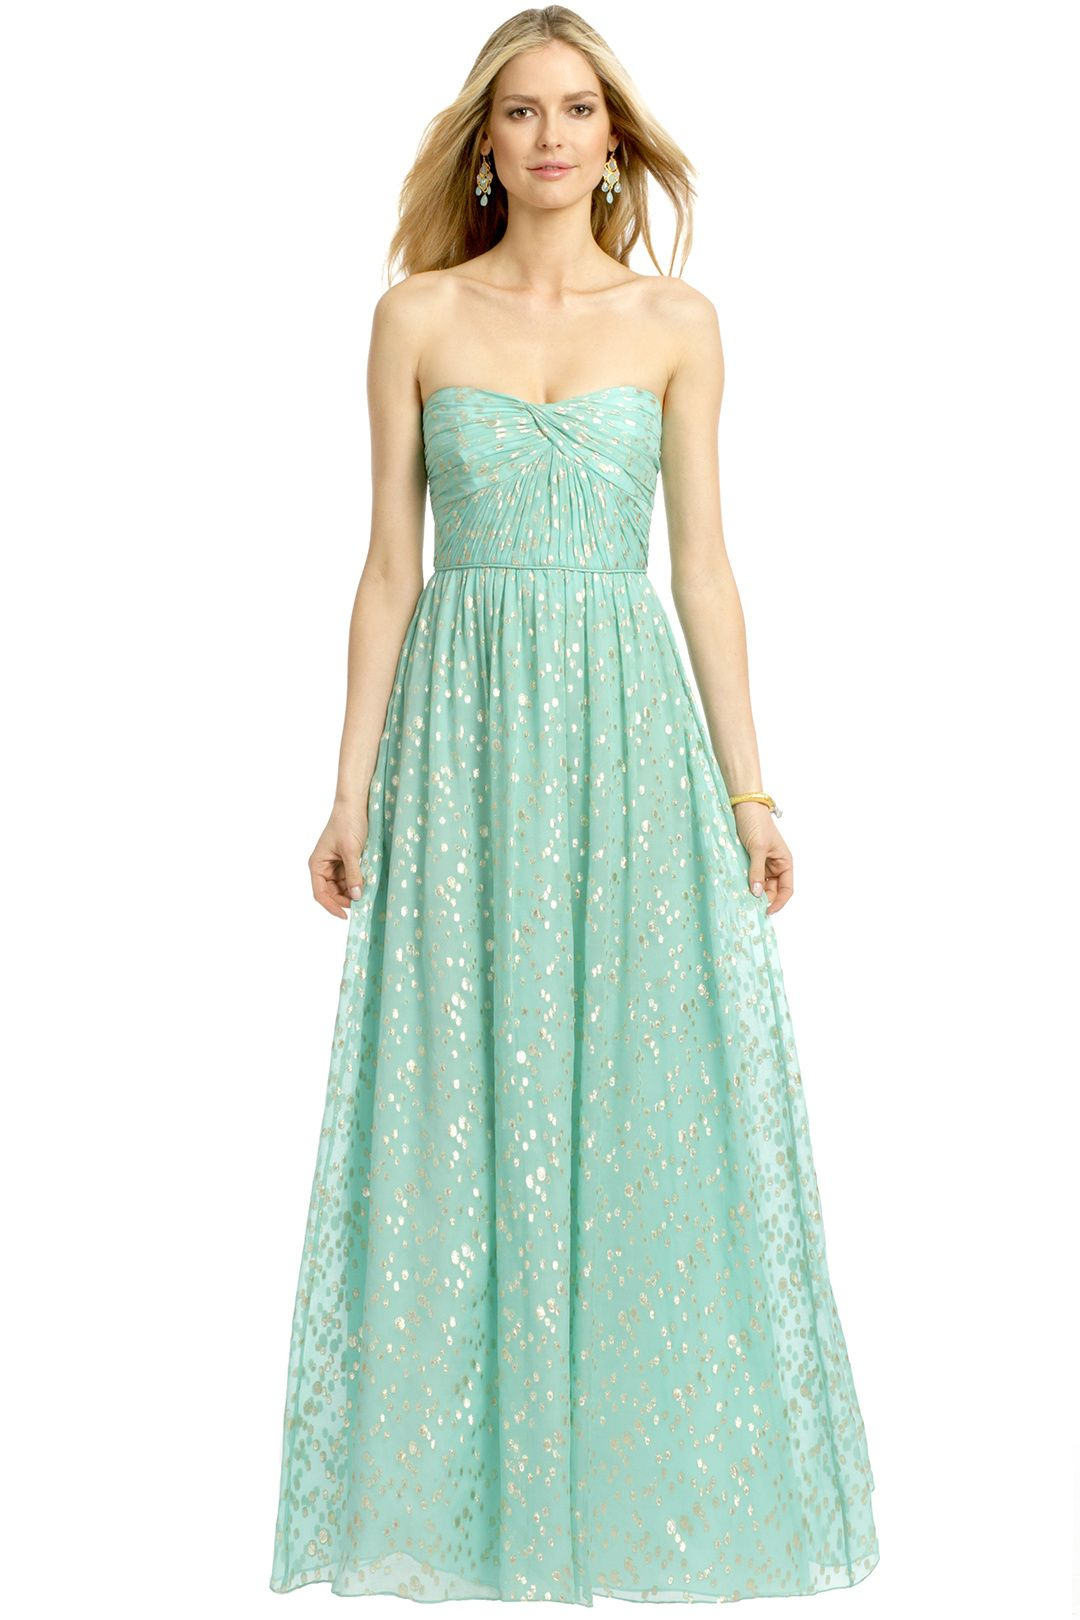 Jennifer Maxi | Dress images, Gowns and Weddings